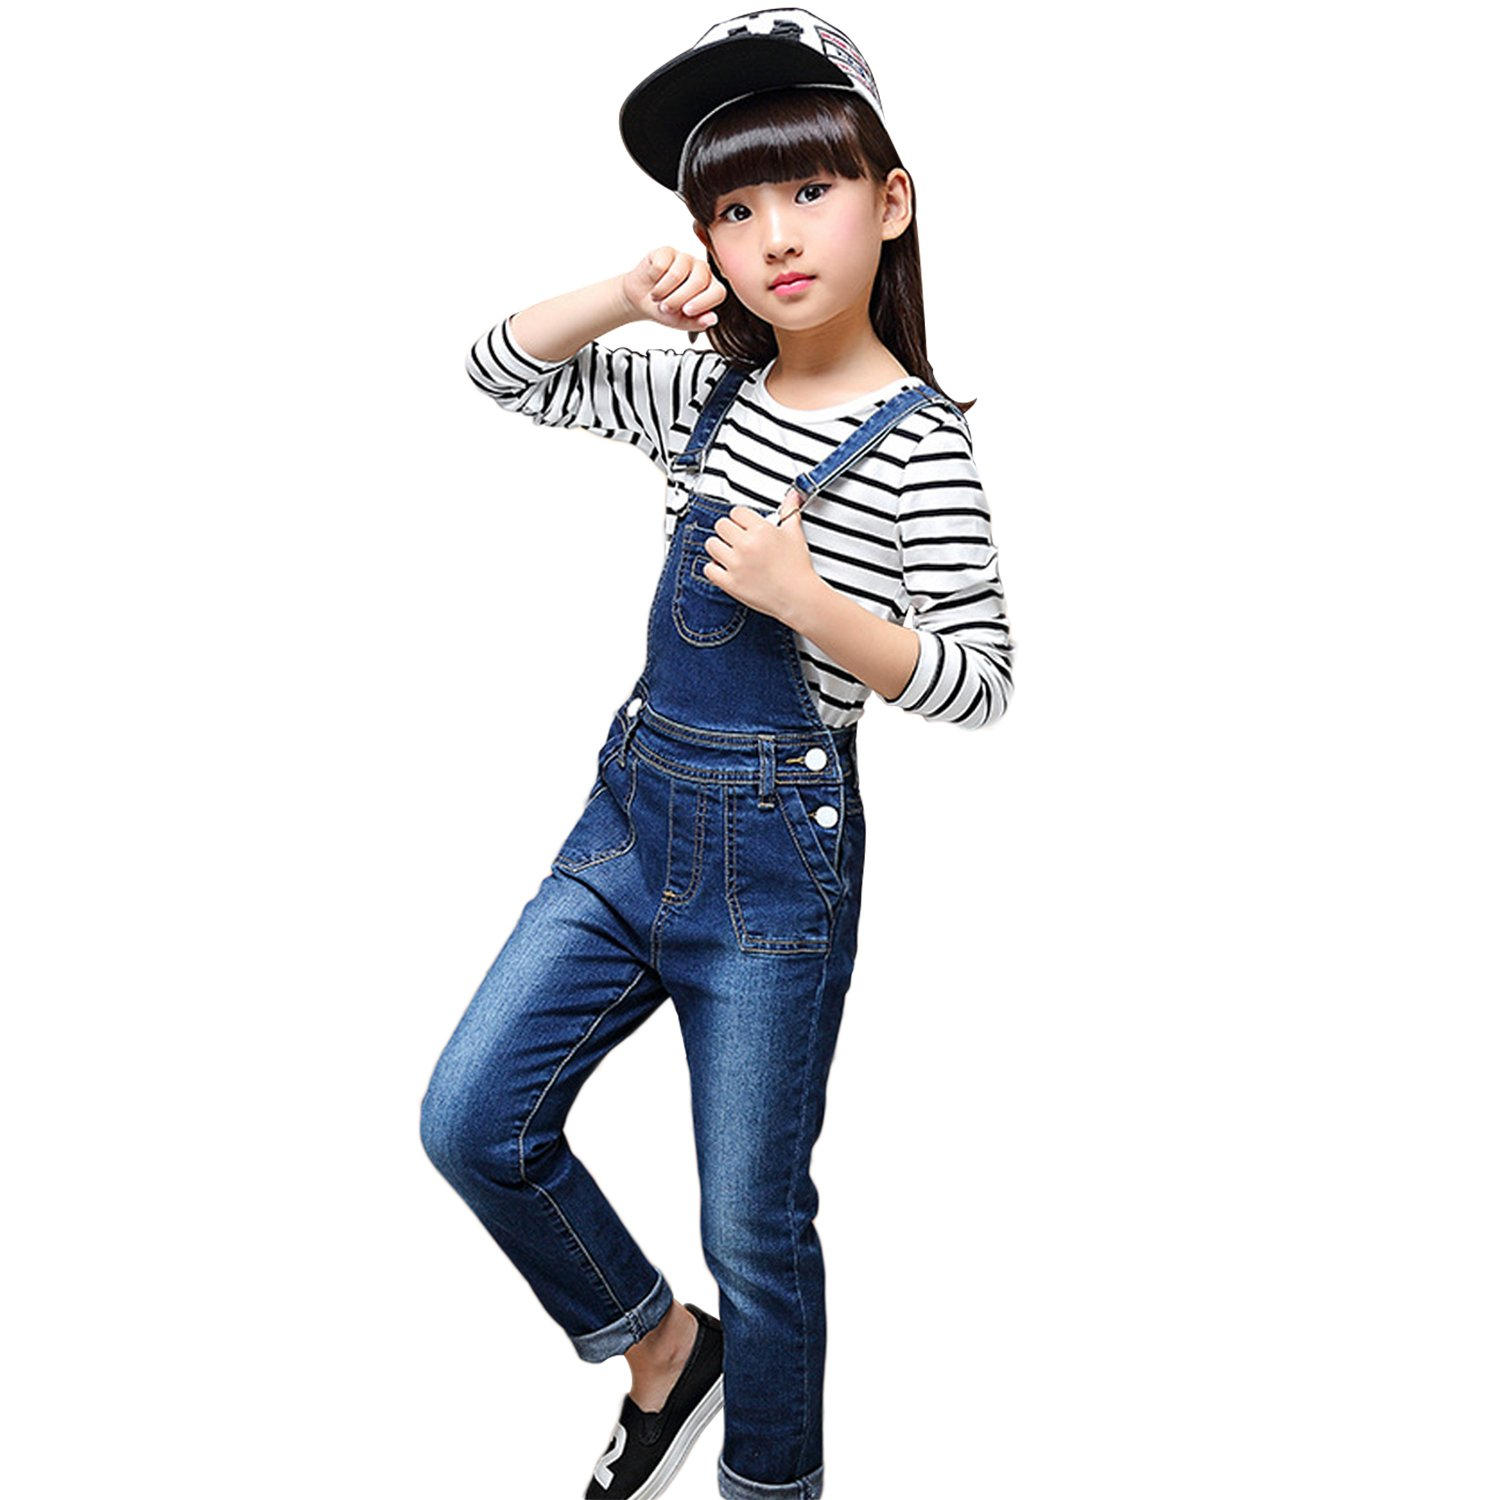 YJ.GWL Girls Denim Overalls Sets Stripe Top 2 Pieces Girls Outfits(Blue,150)